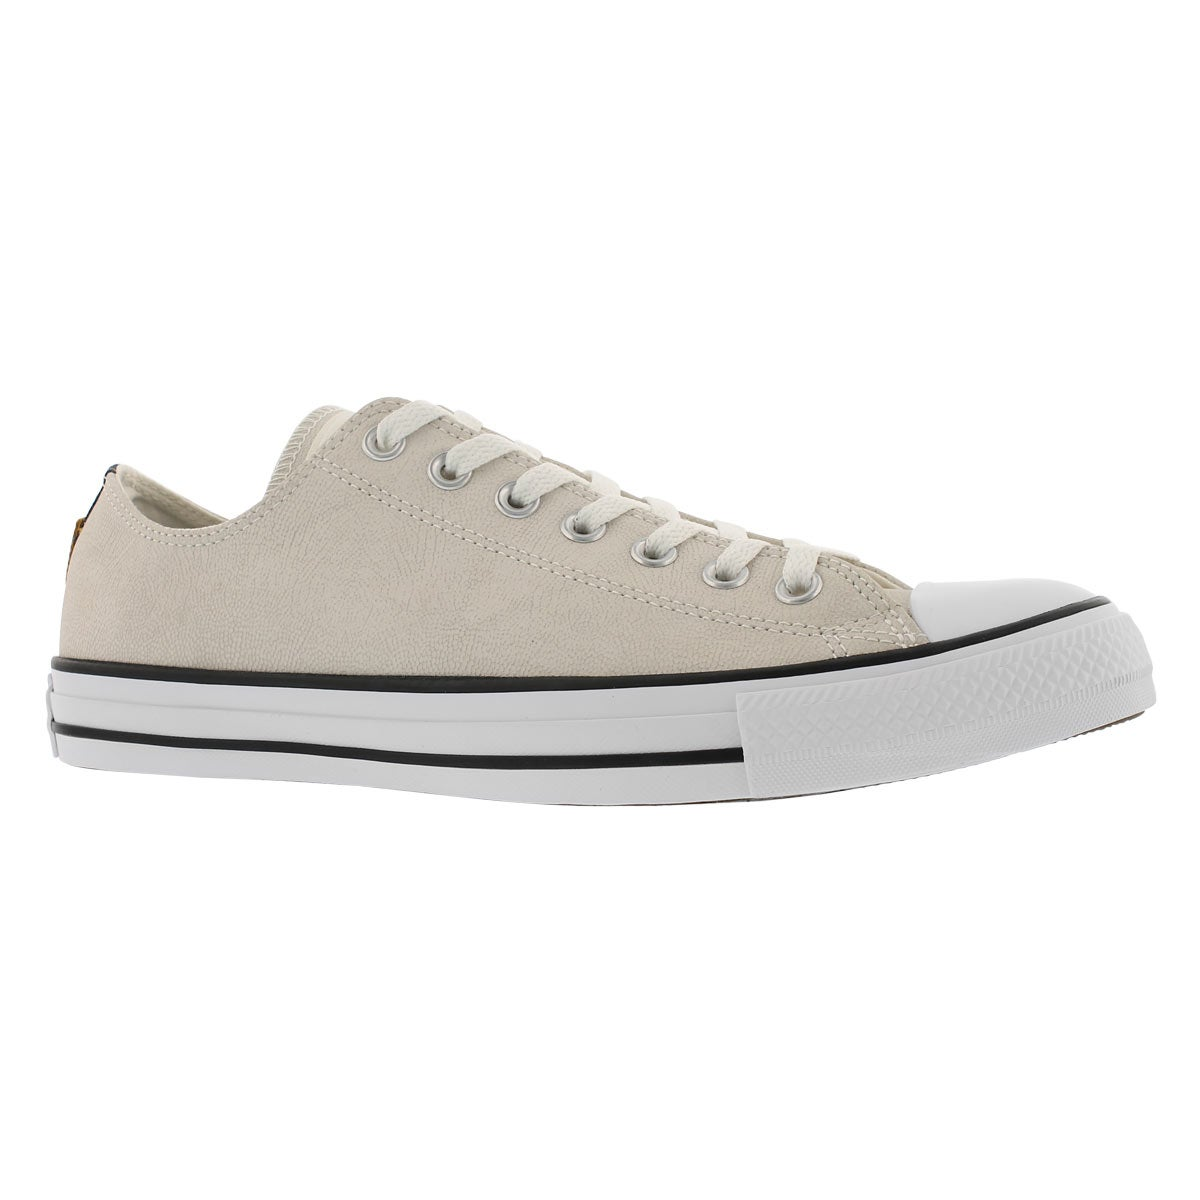 Men's CT ALL STAR LEATHER OX egret sneakers